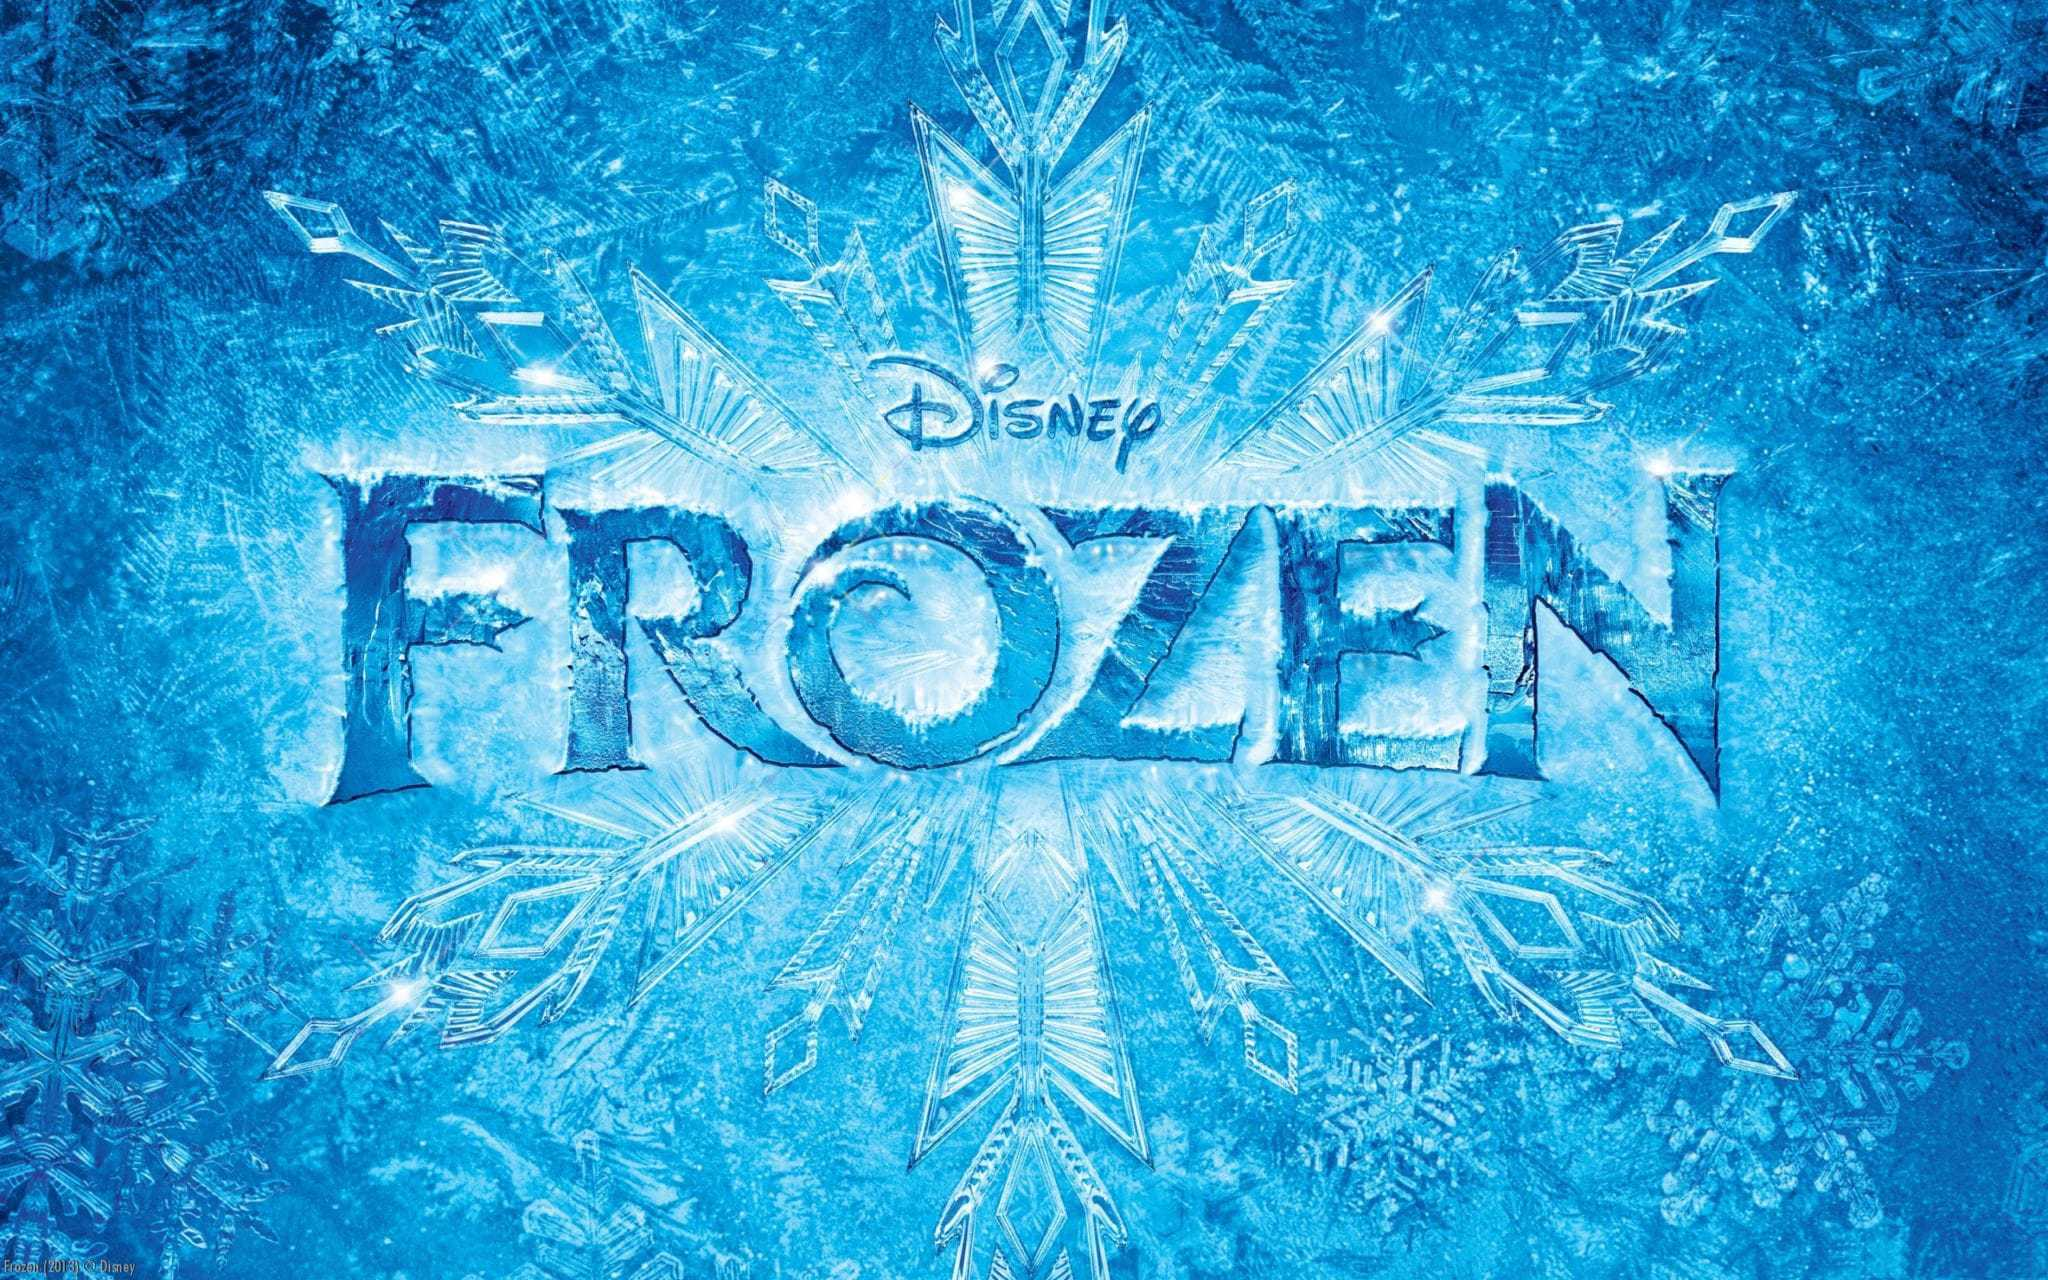 Disney Frozen Wallpaper 2